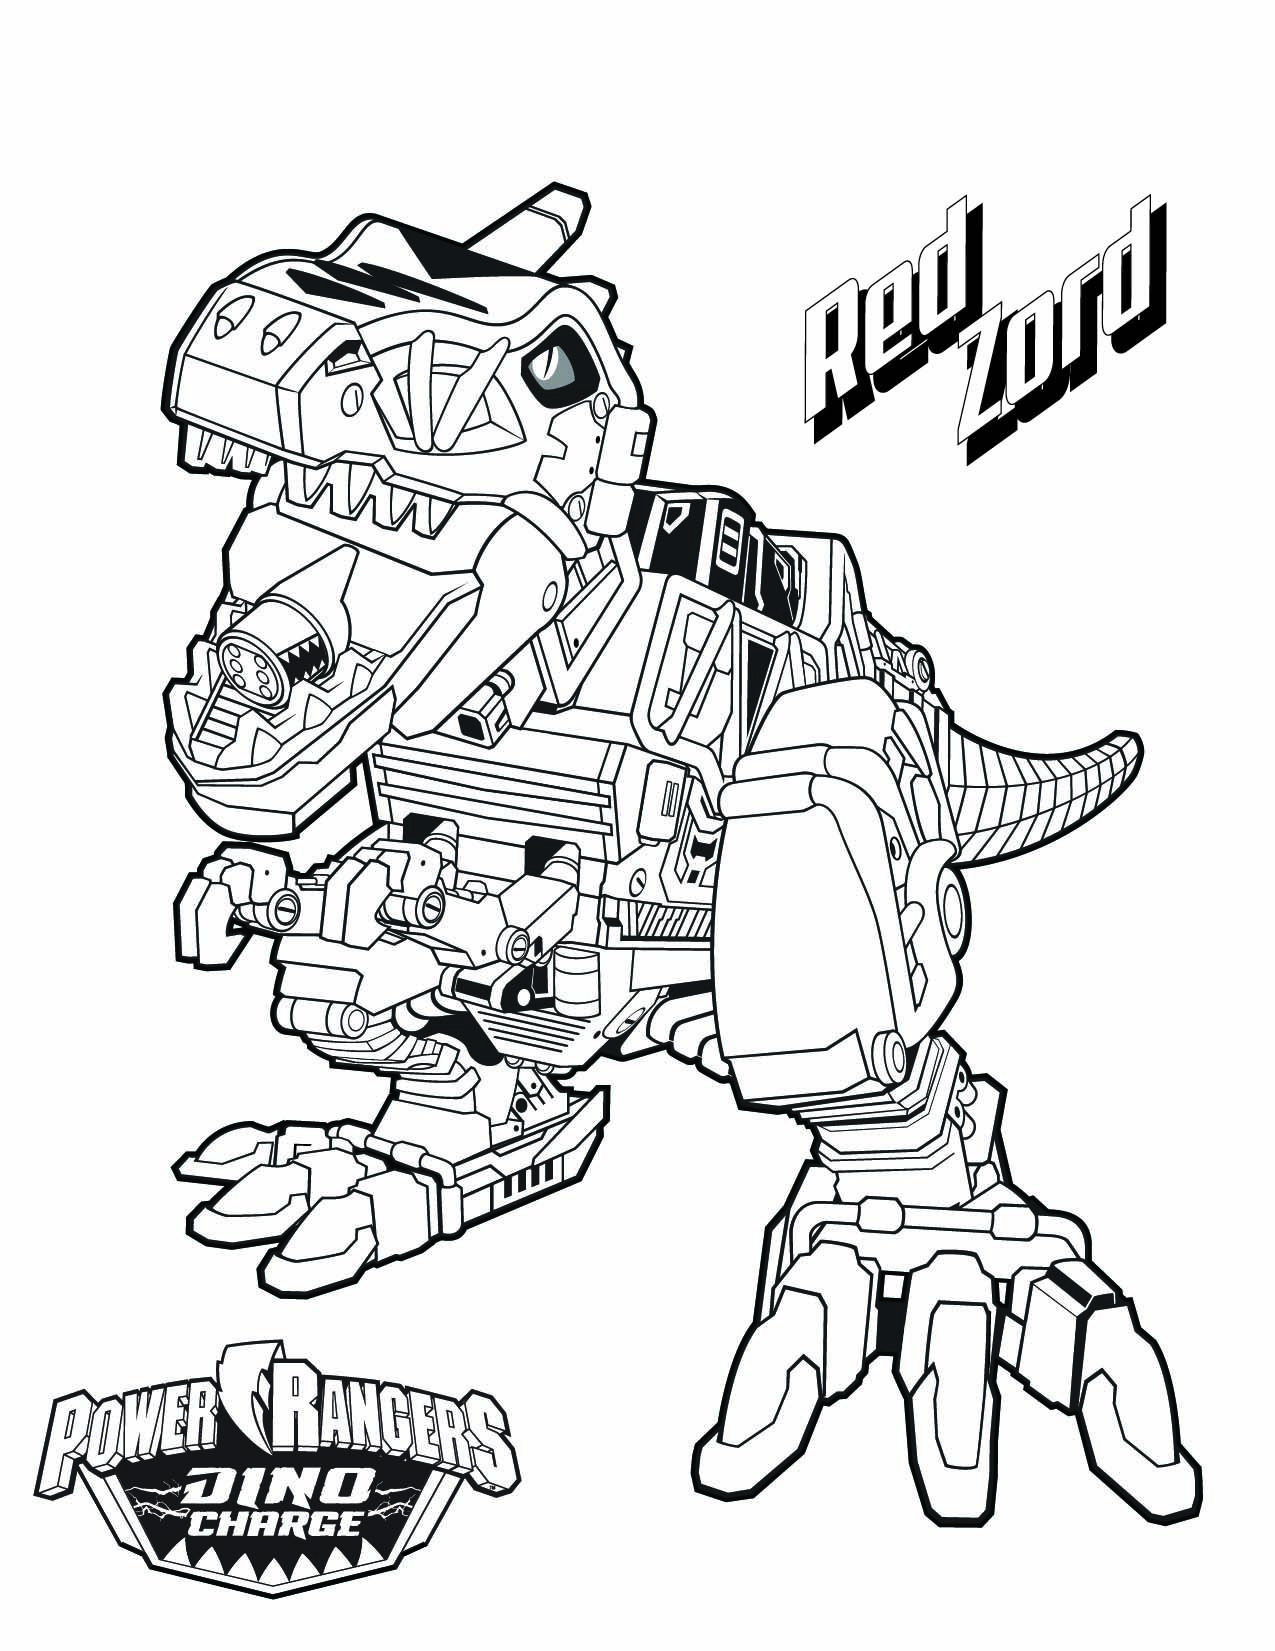 Ausmalbilder Jungs Dinosaurier : Tyrannosaurus Rex Coloring Page Power Rangers The Official Power